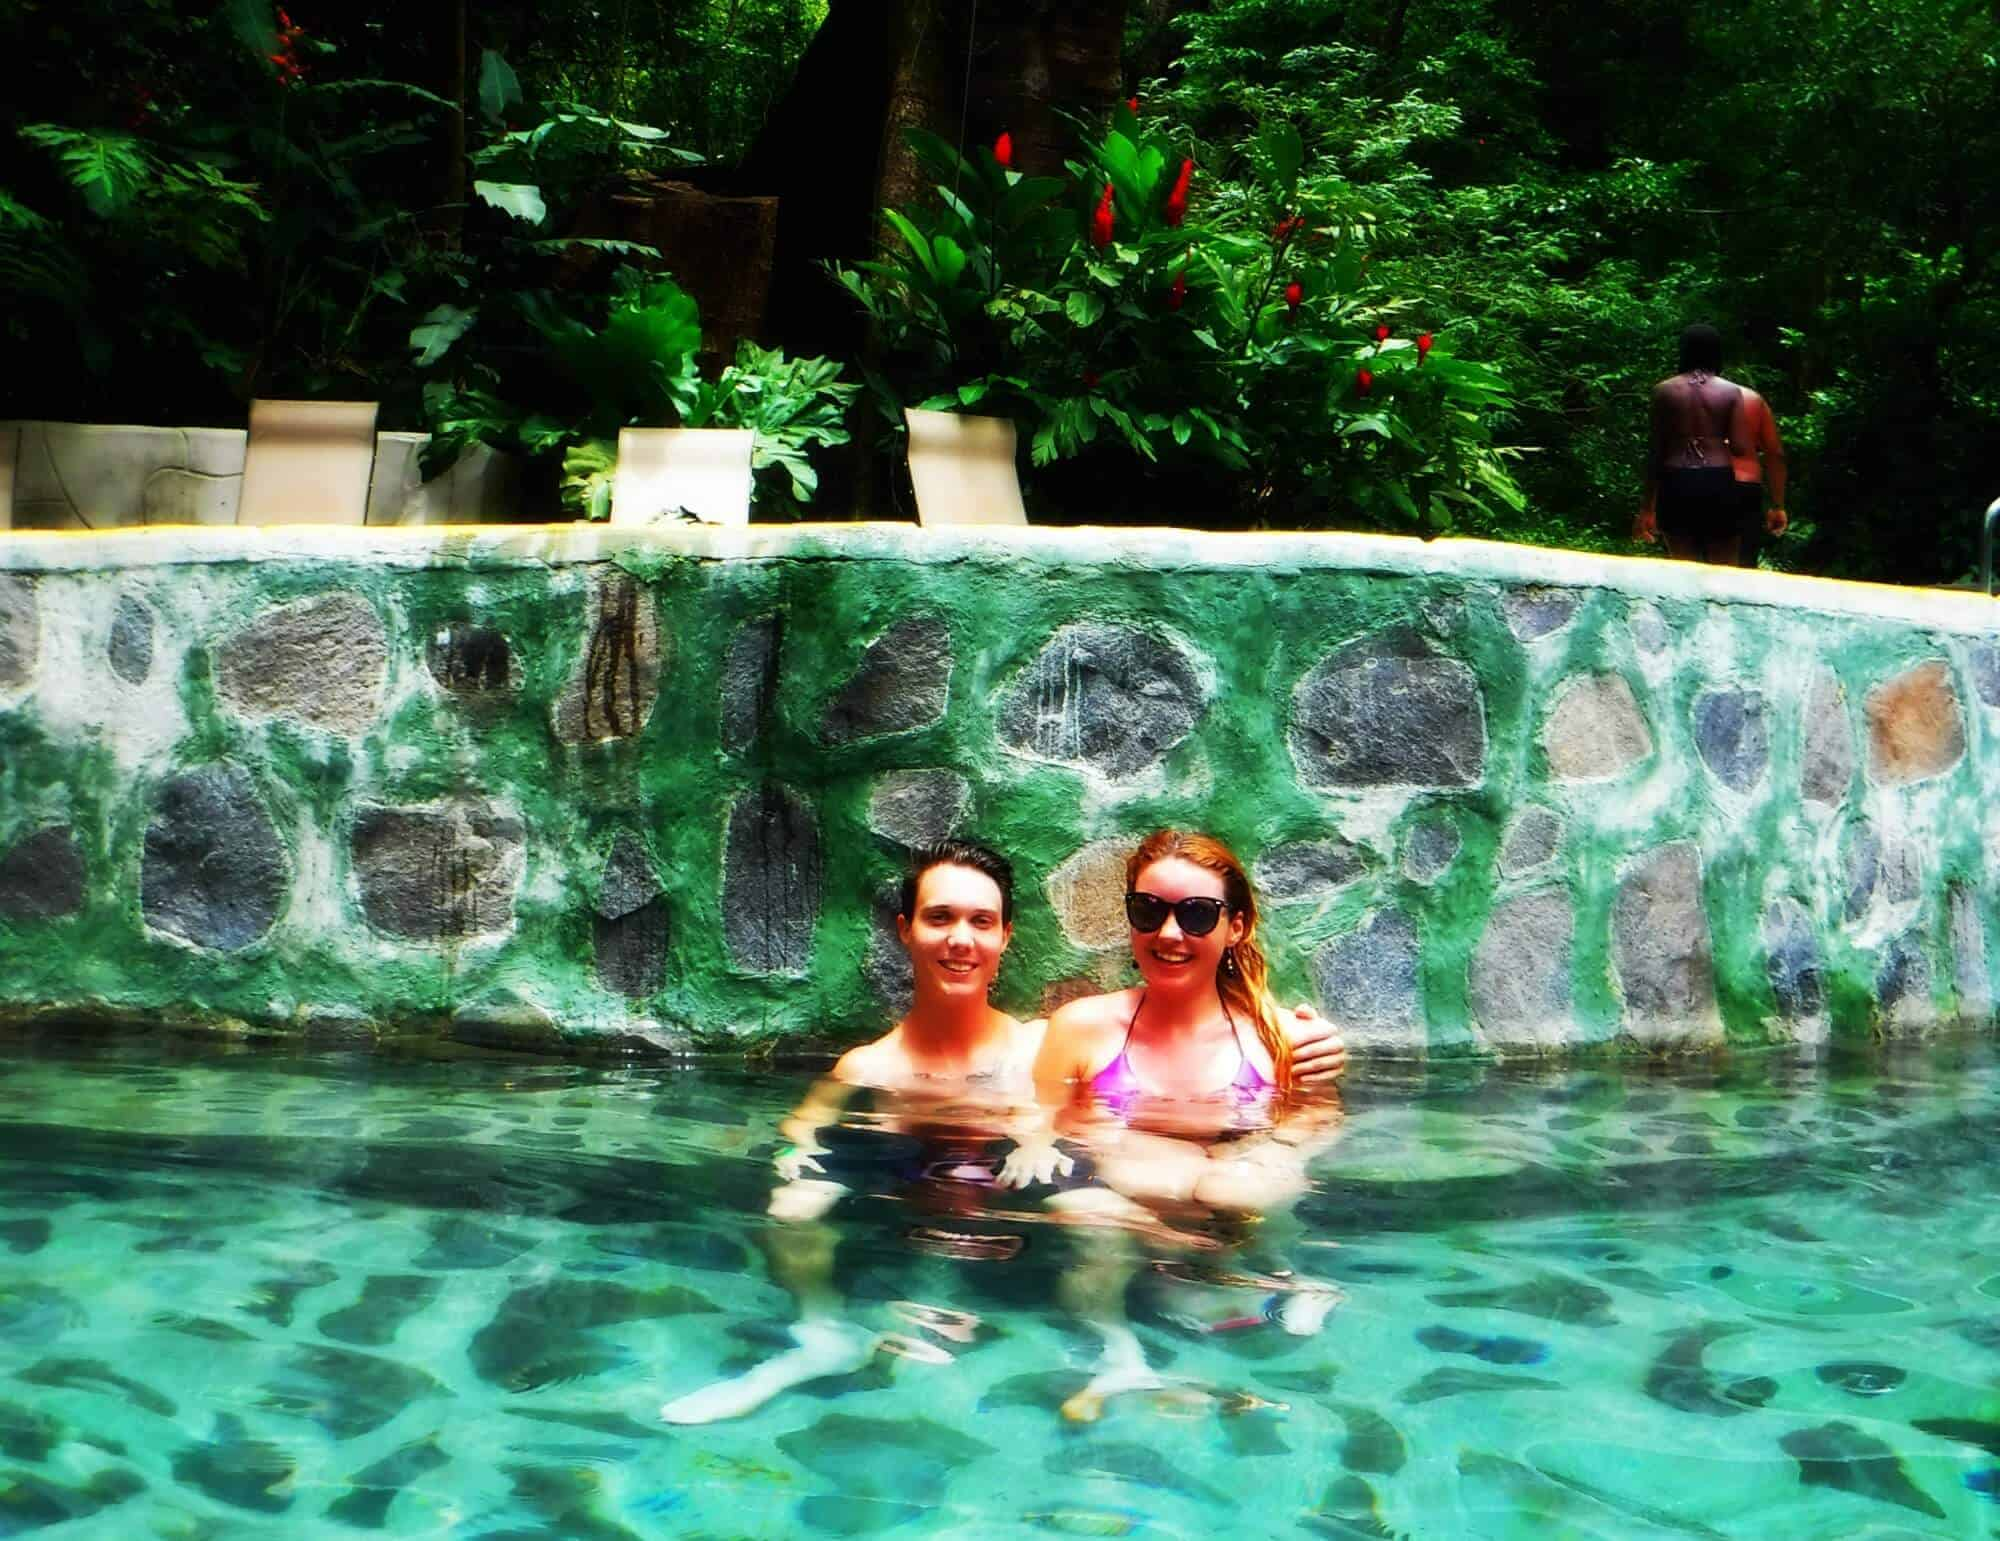 Hot springs at Buena Vista Lodge and Adventure in Costa Rica